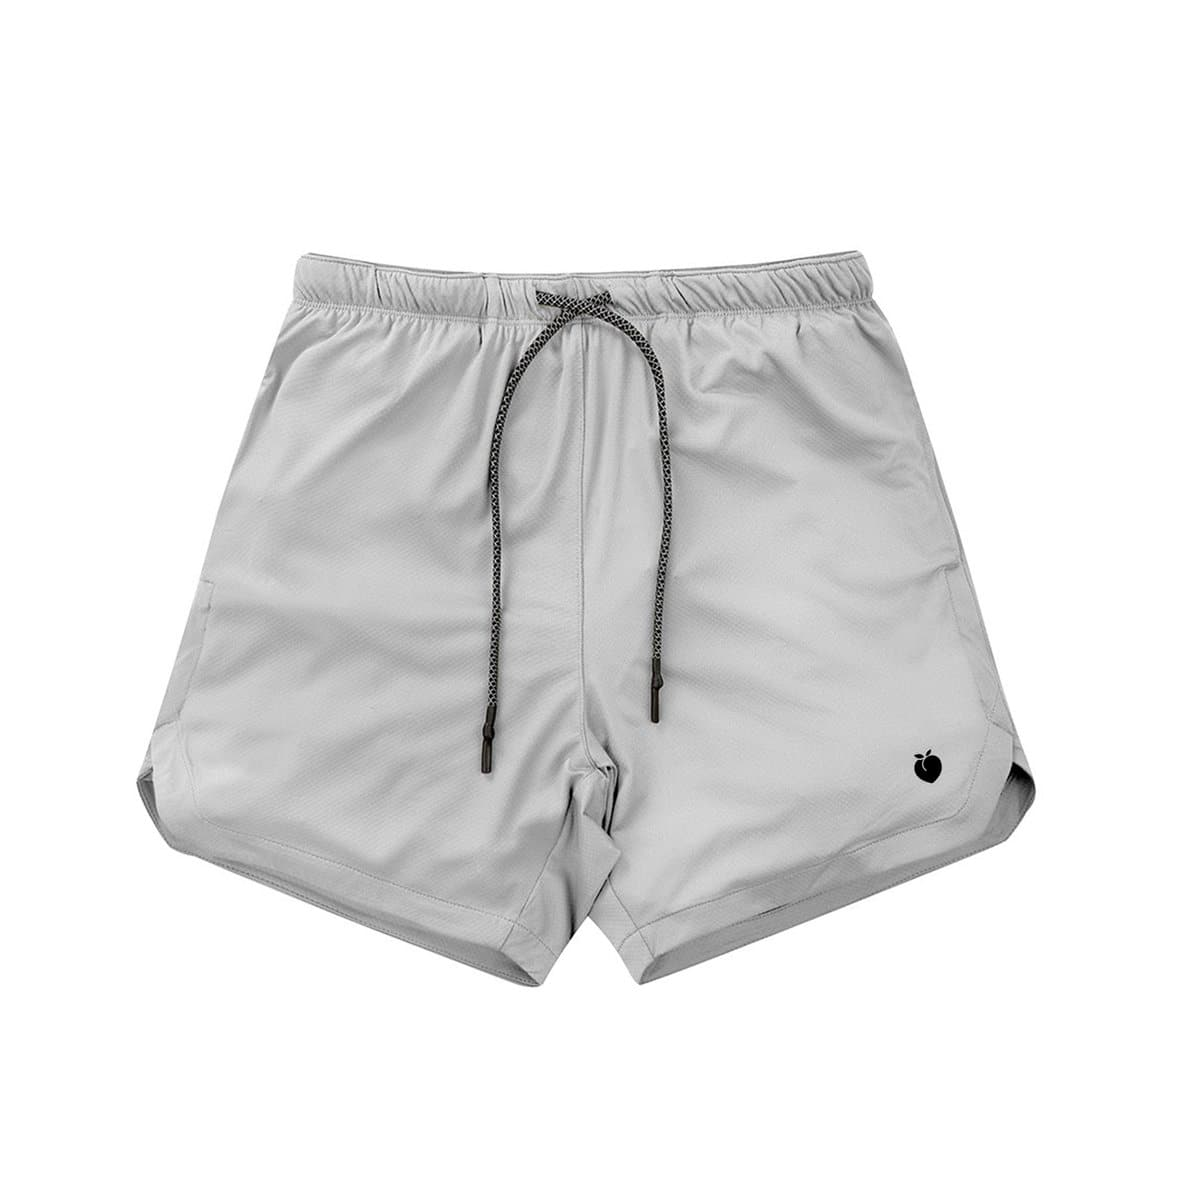 Men's Linerless Active Shorts - Grey